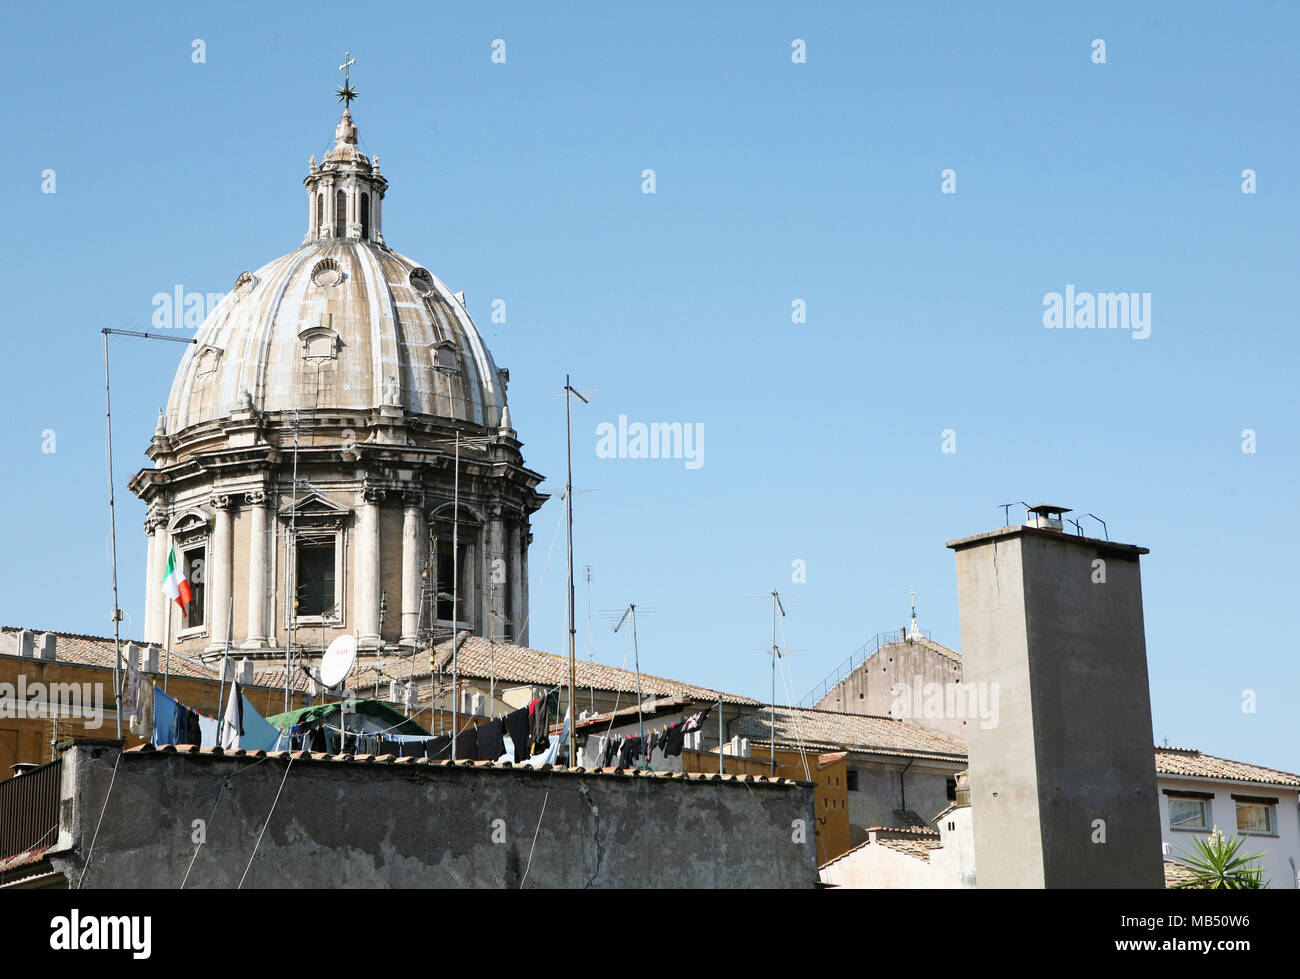 St. Andrea della Valle church dome with Italian flag and laundry line, Rome, Italy - Stock Image